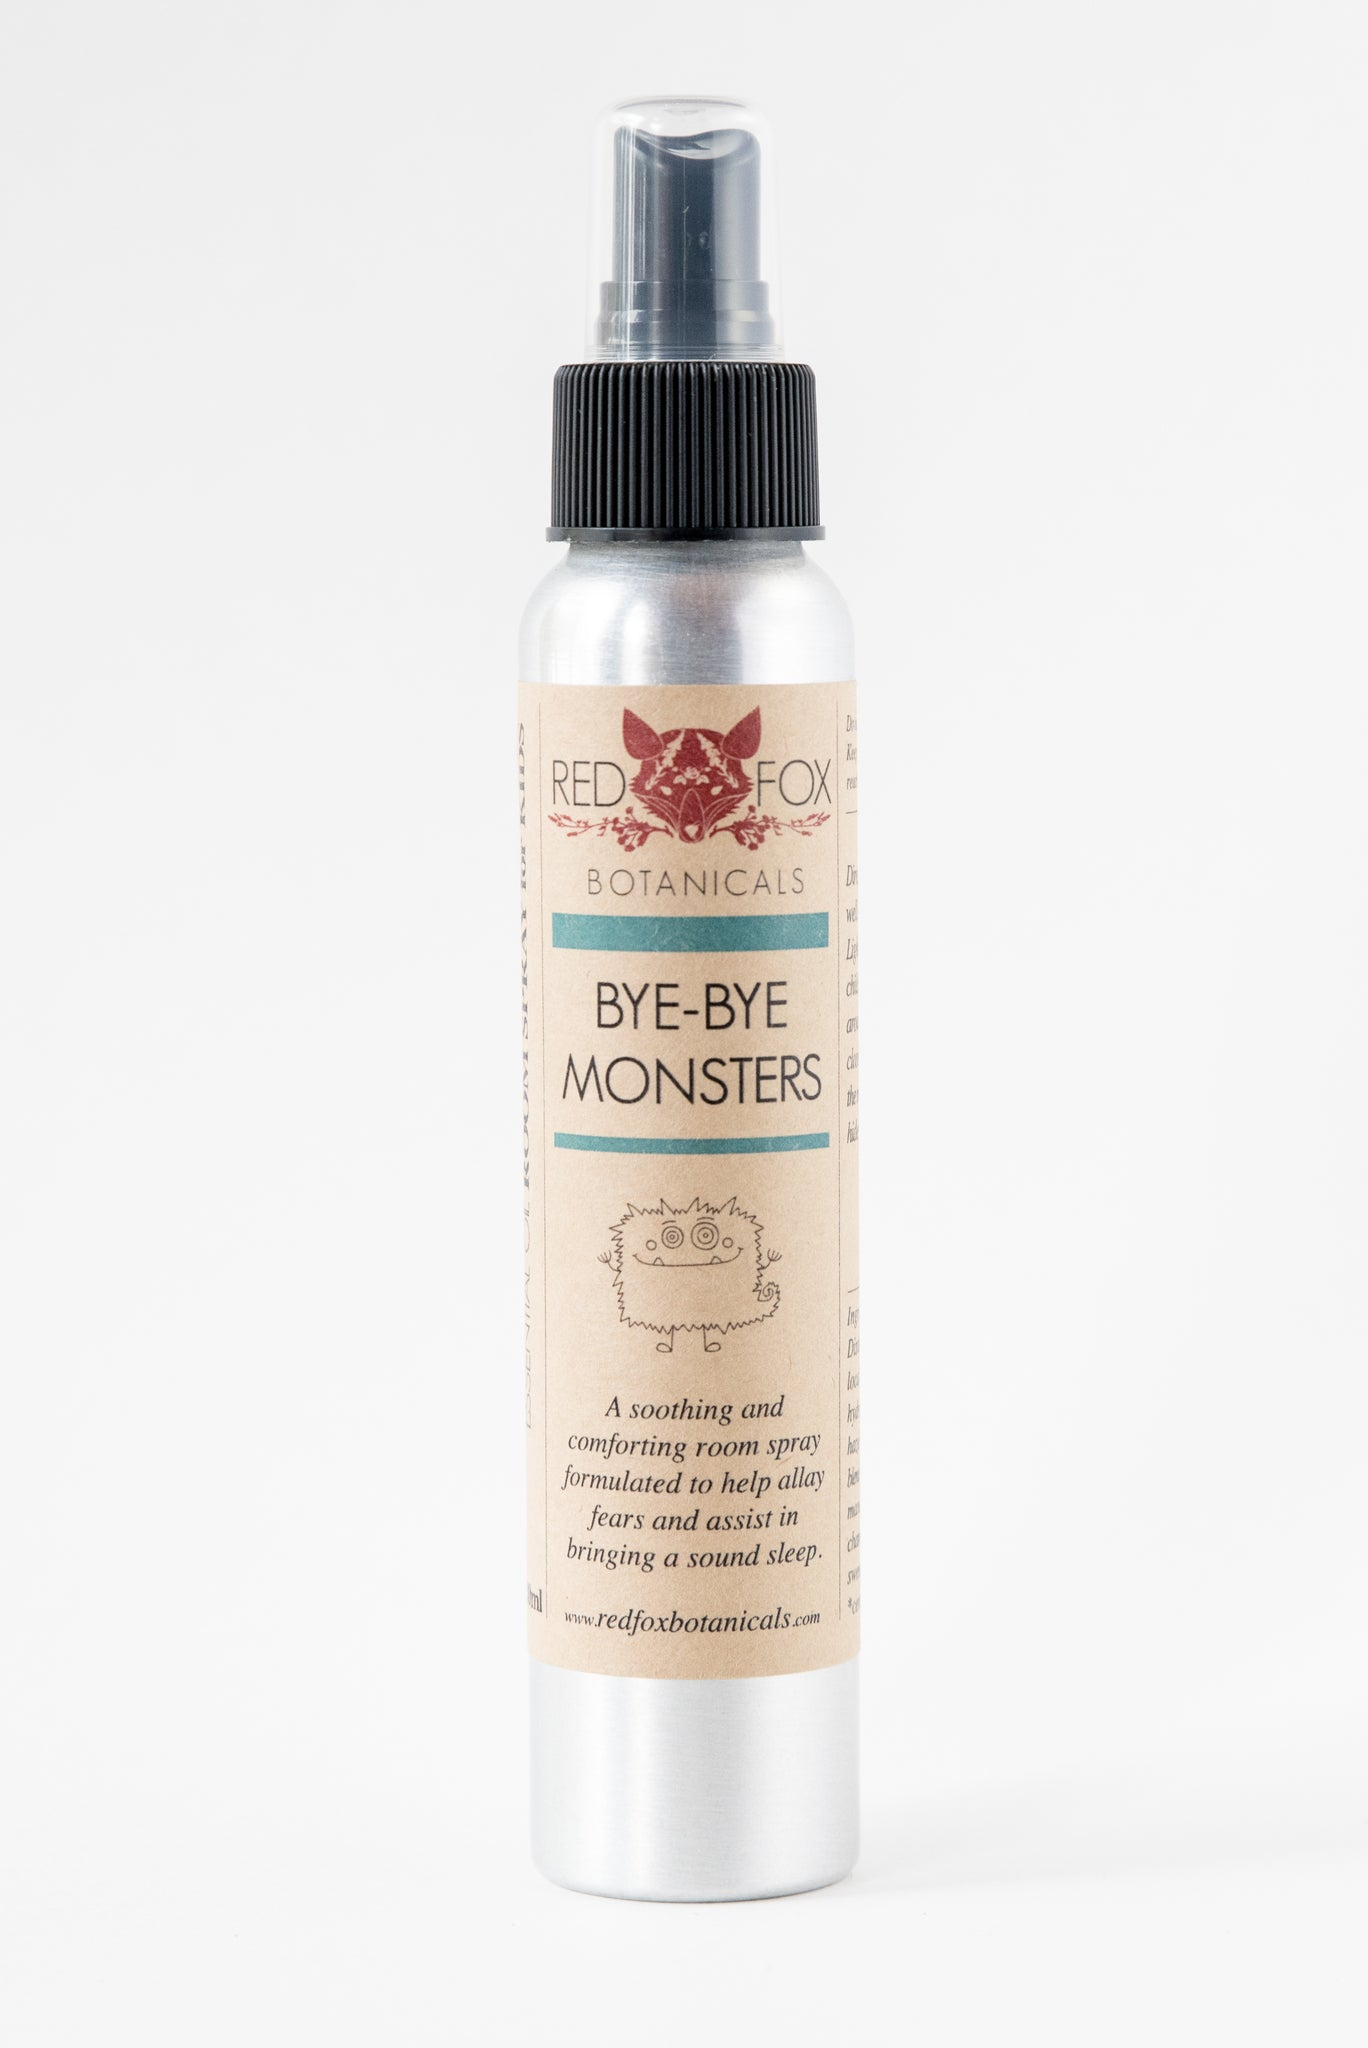 BYE BYE MONSTERS - Body and Room Spray